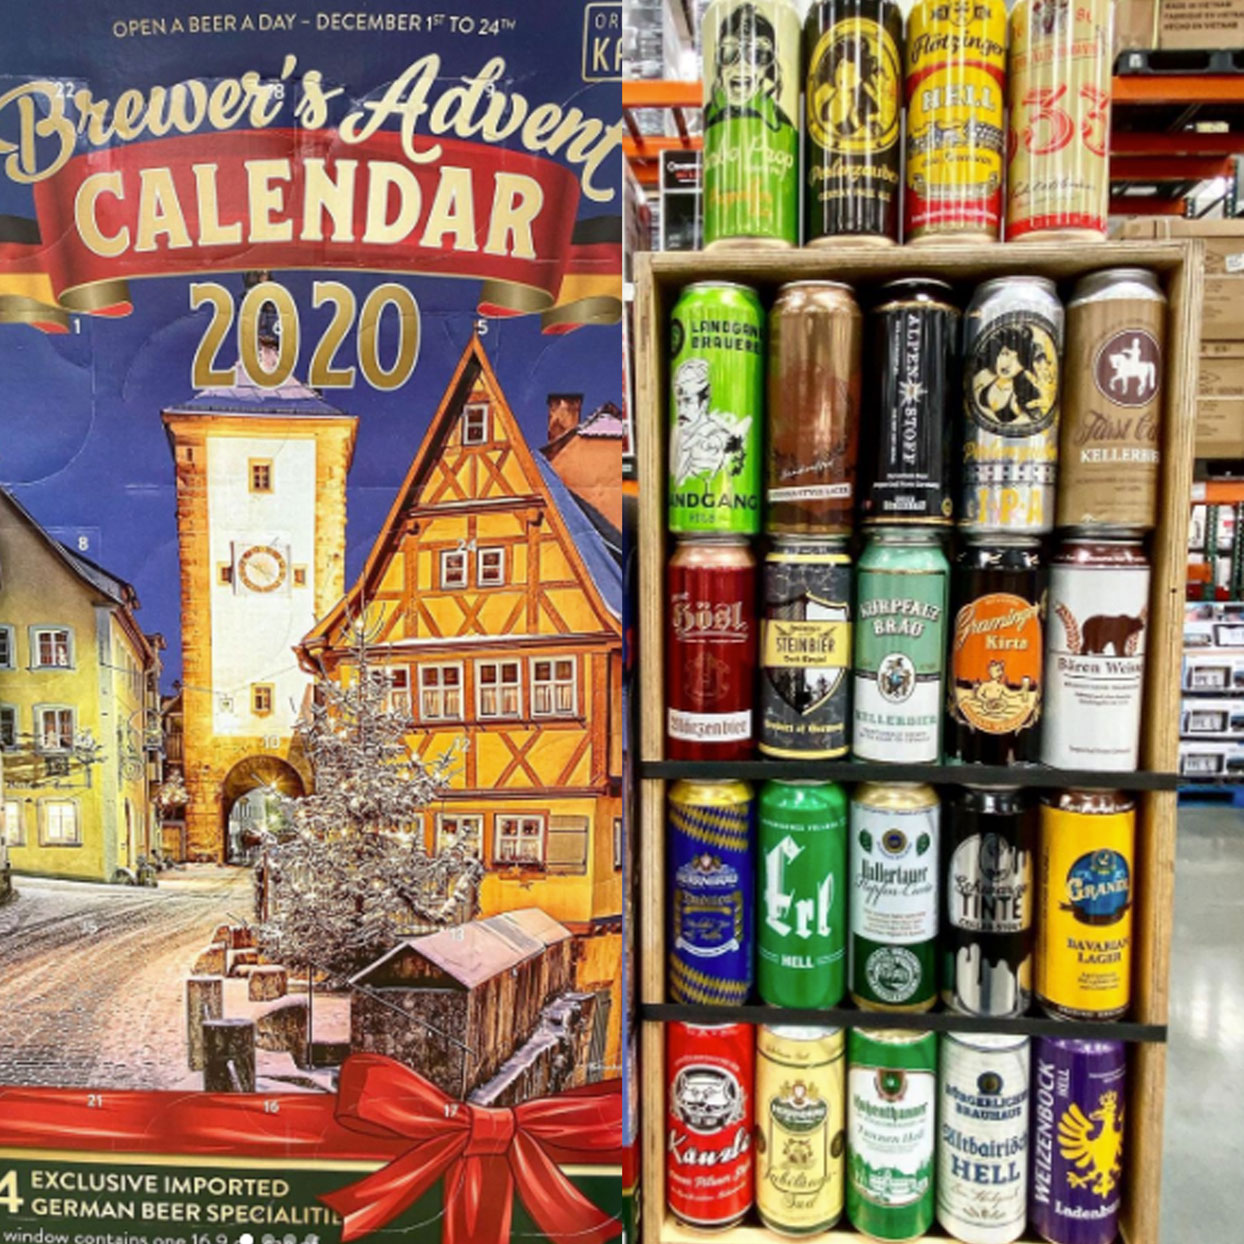 Costco's German Beer Calendar Proves It's Not Too Early to Start Celebrating the Holidays